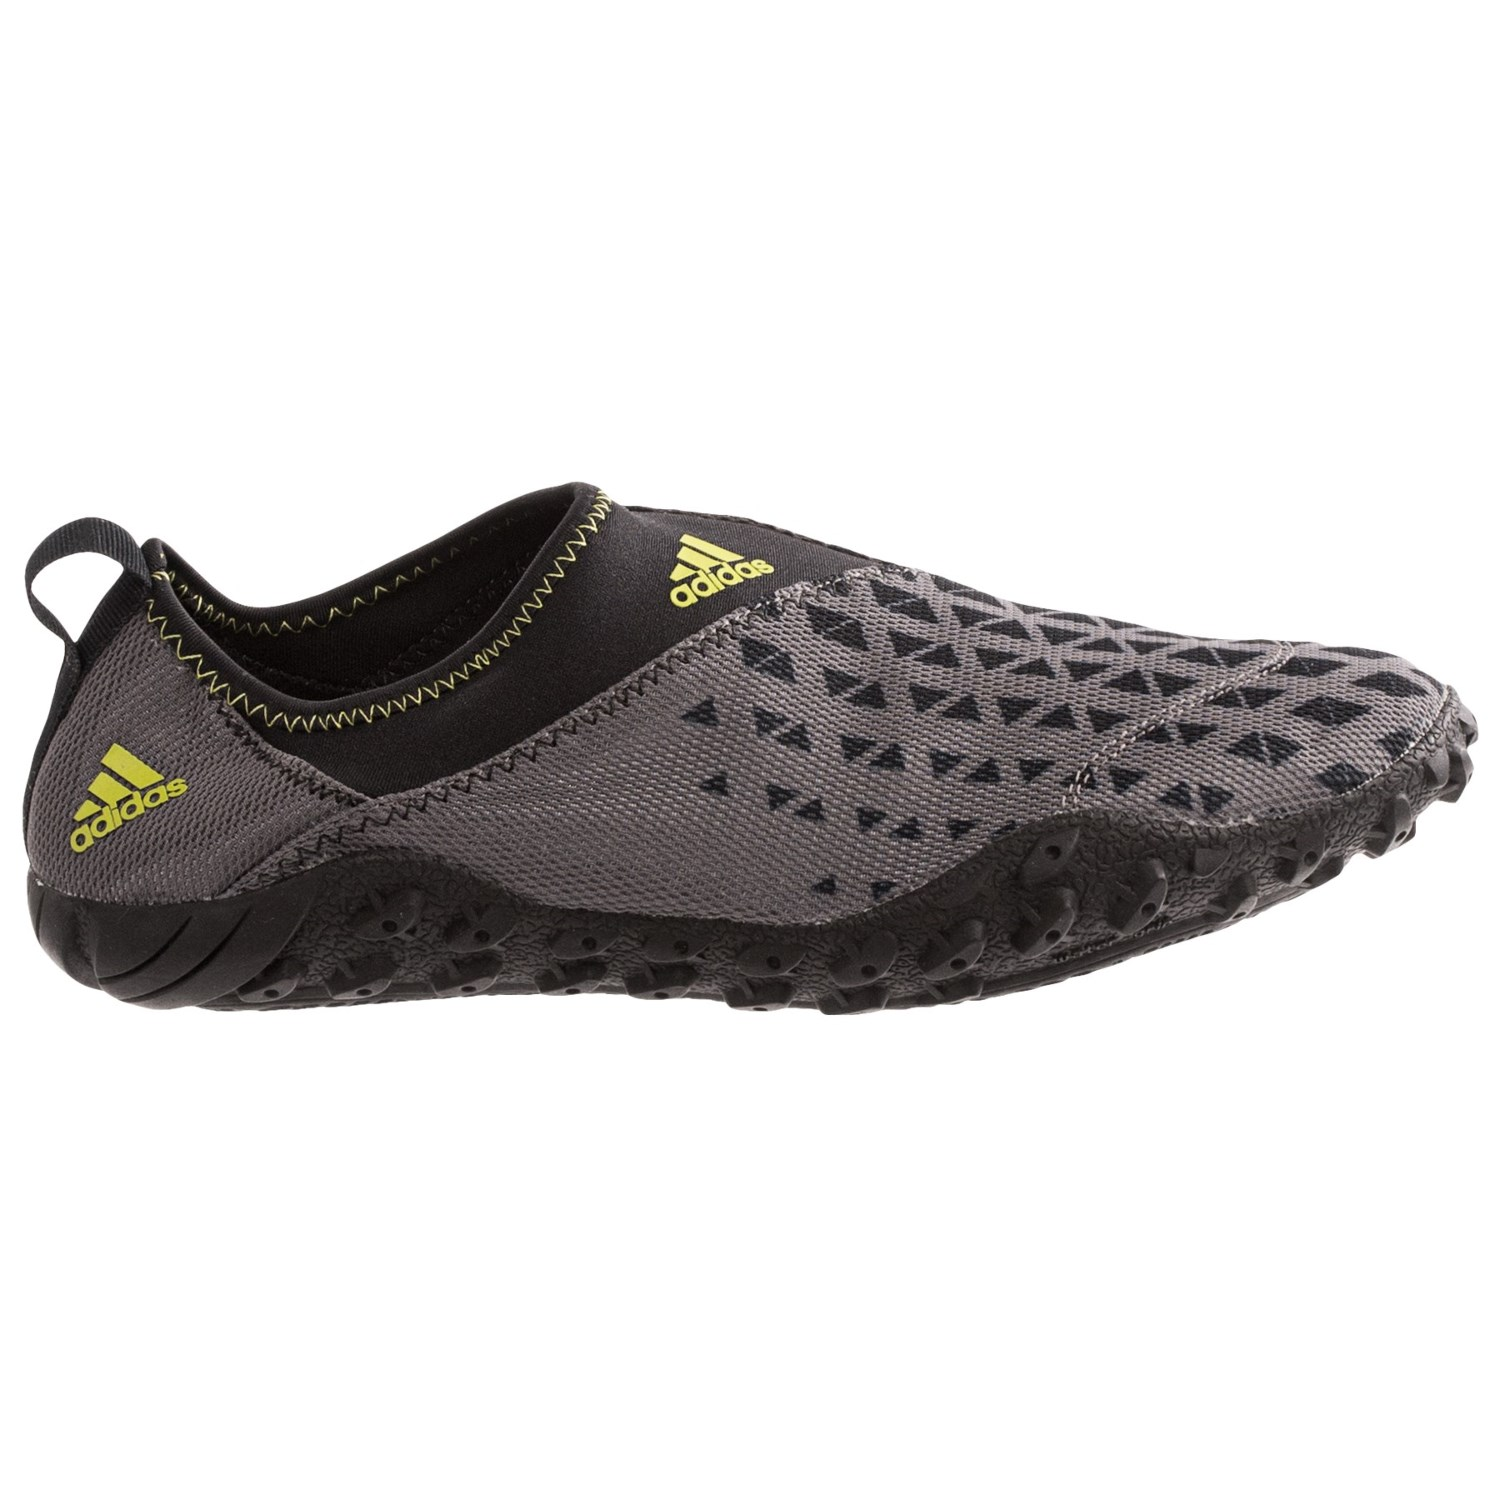 Buy Aqua Shoes Online